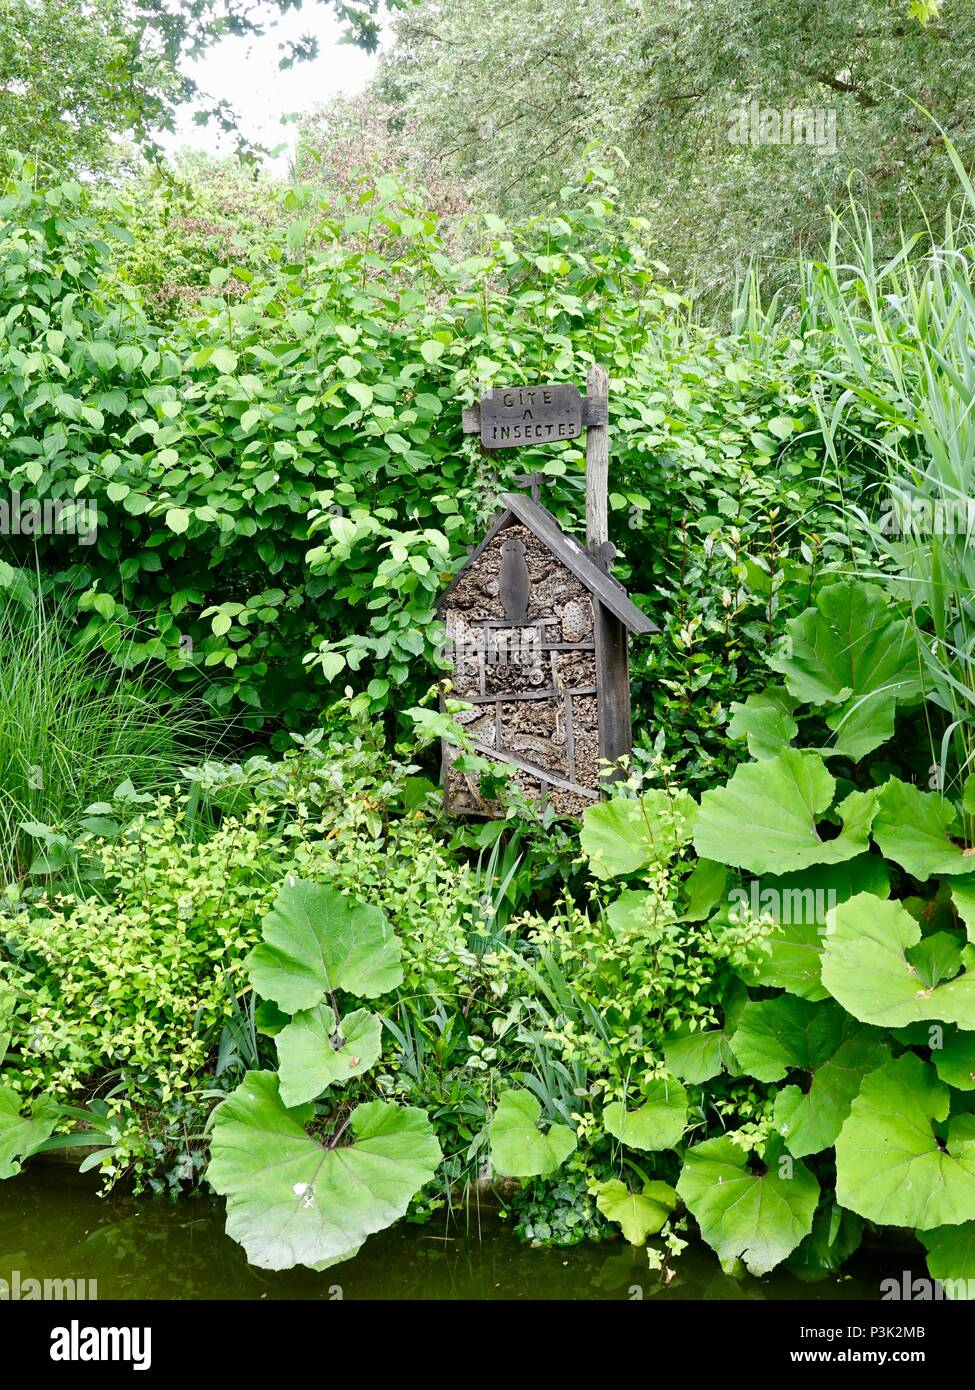 Insect house surrounded by lush foliage, Bercy Park, Paris, France - Stock Image